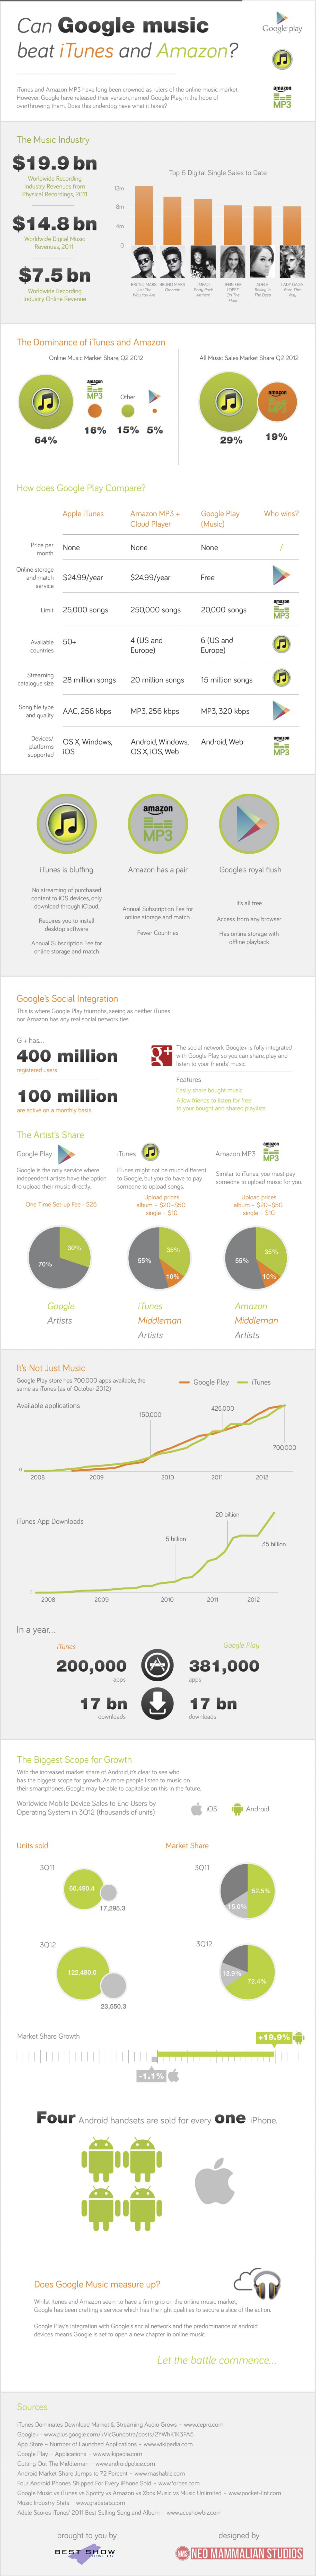 Can Google Play beat iTunes and Amazon? Infographic